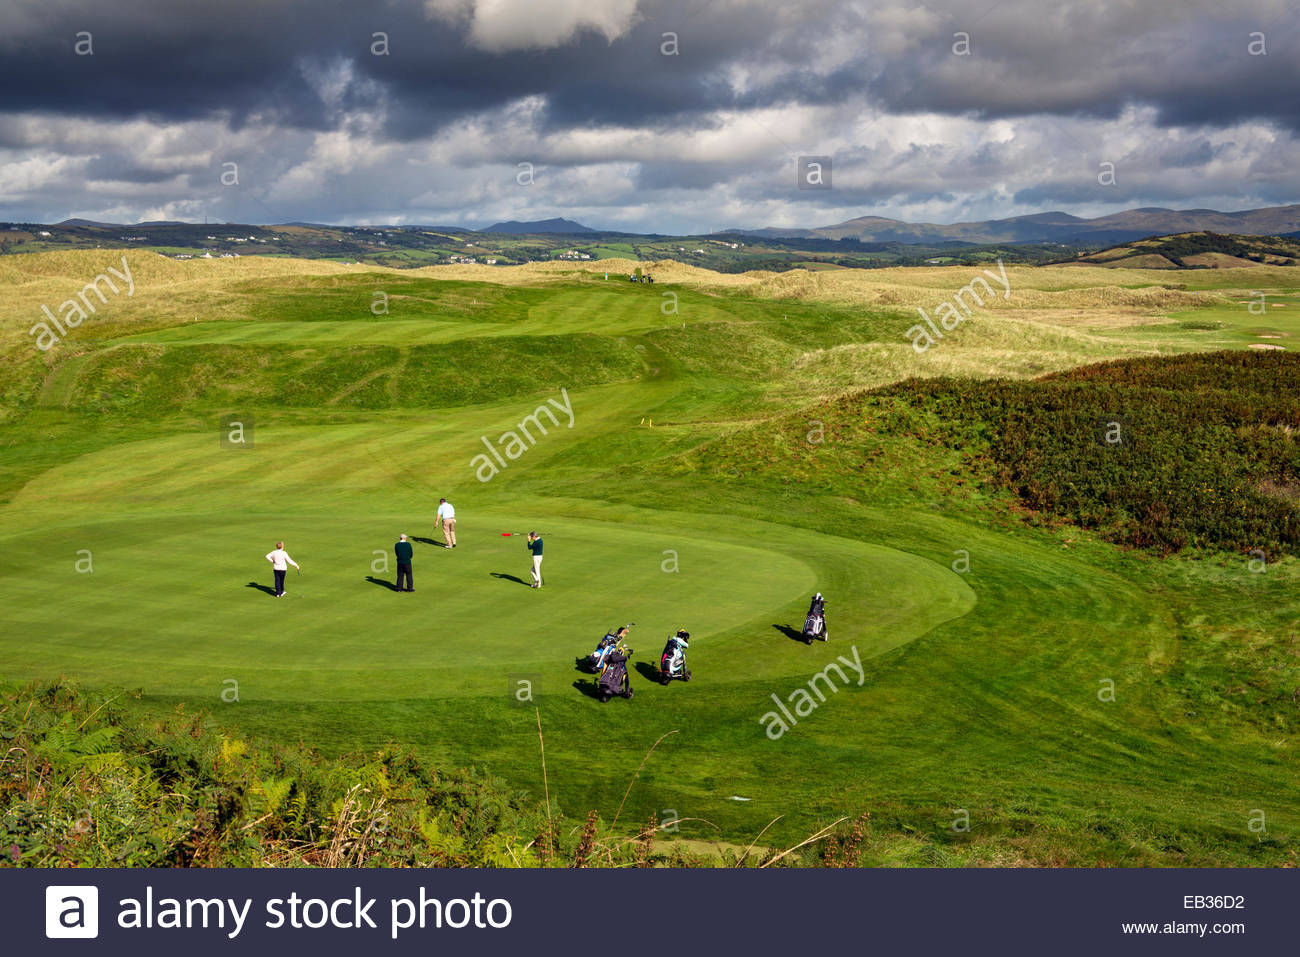 Donegal Championship Golf Club, Mervagh, Laghey, County Donegal, Ireland. - Stock Image